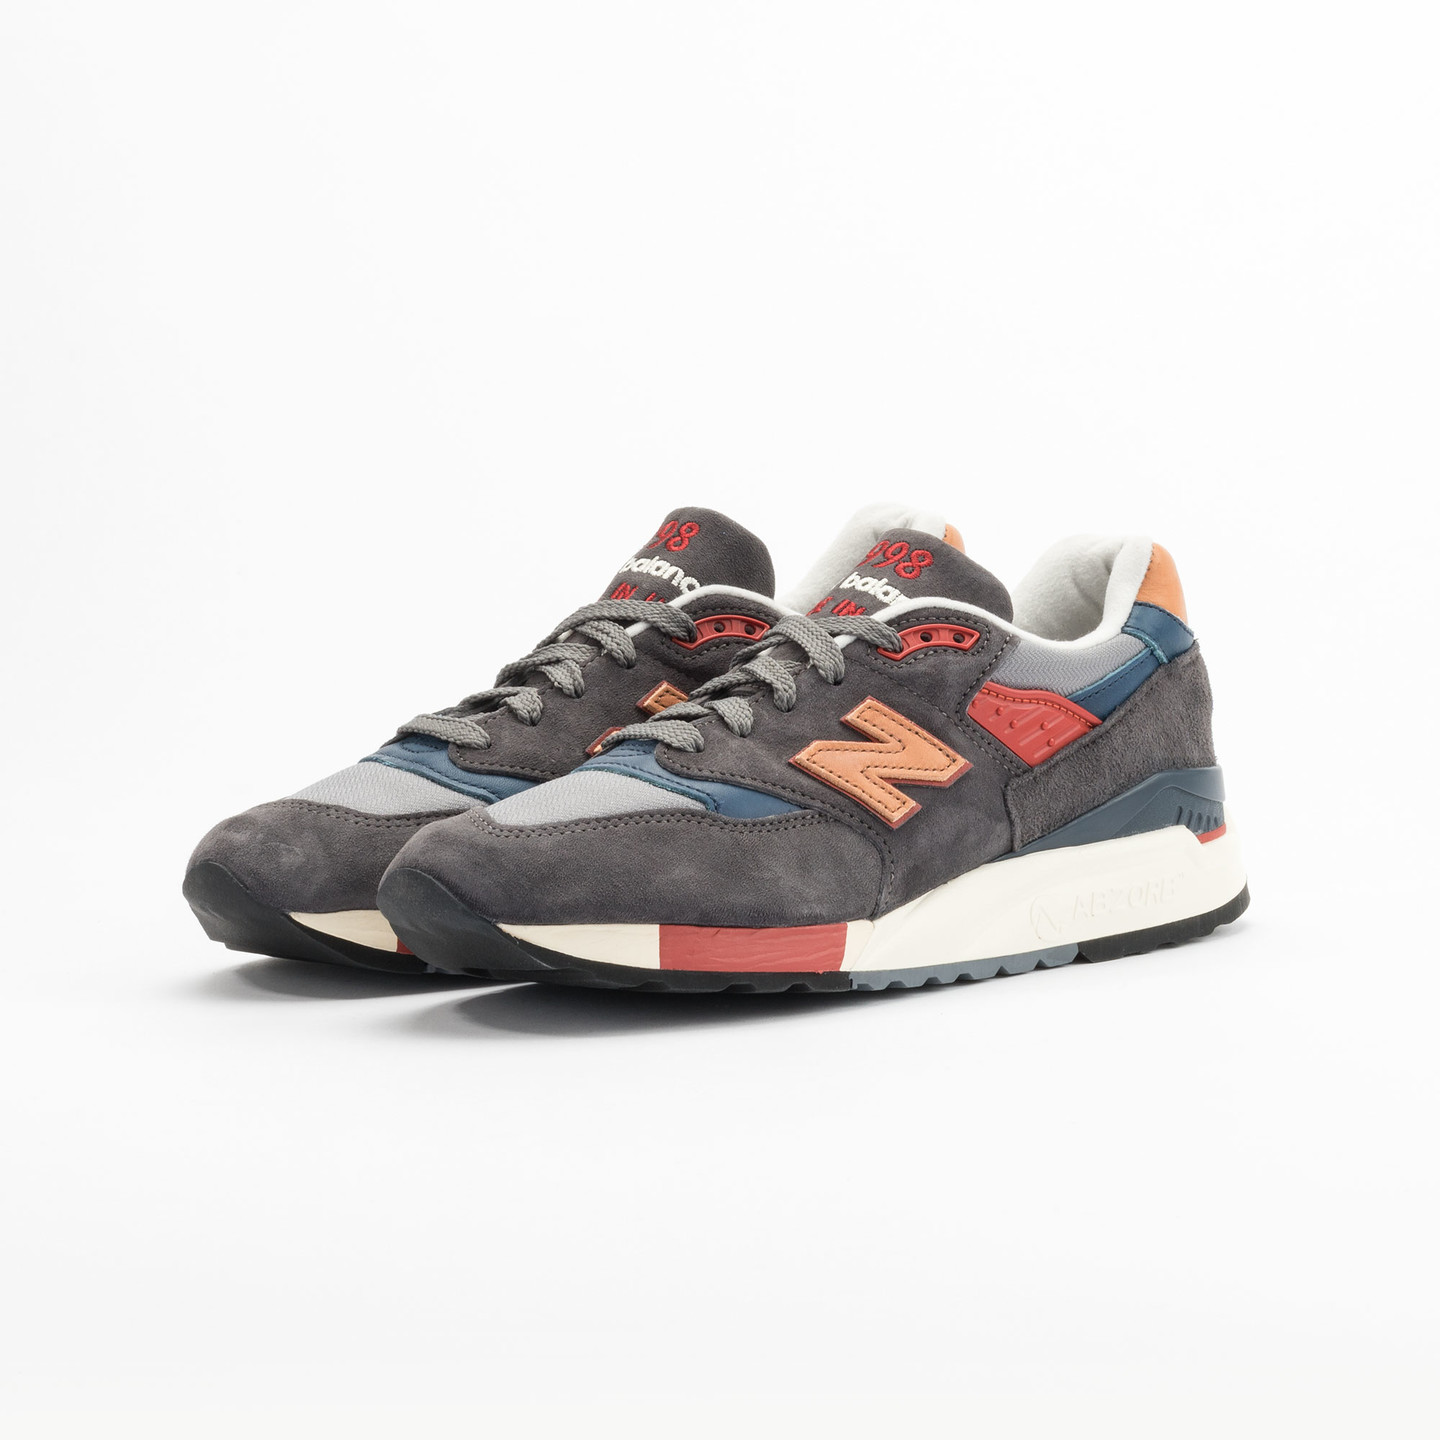 New Balance M998 Made in USA Dark Grey / Beige / Red / Navy M998DBR-42.5